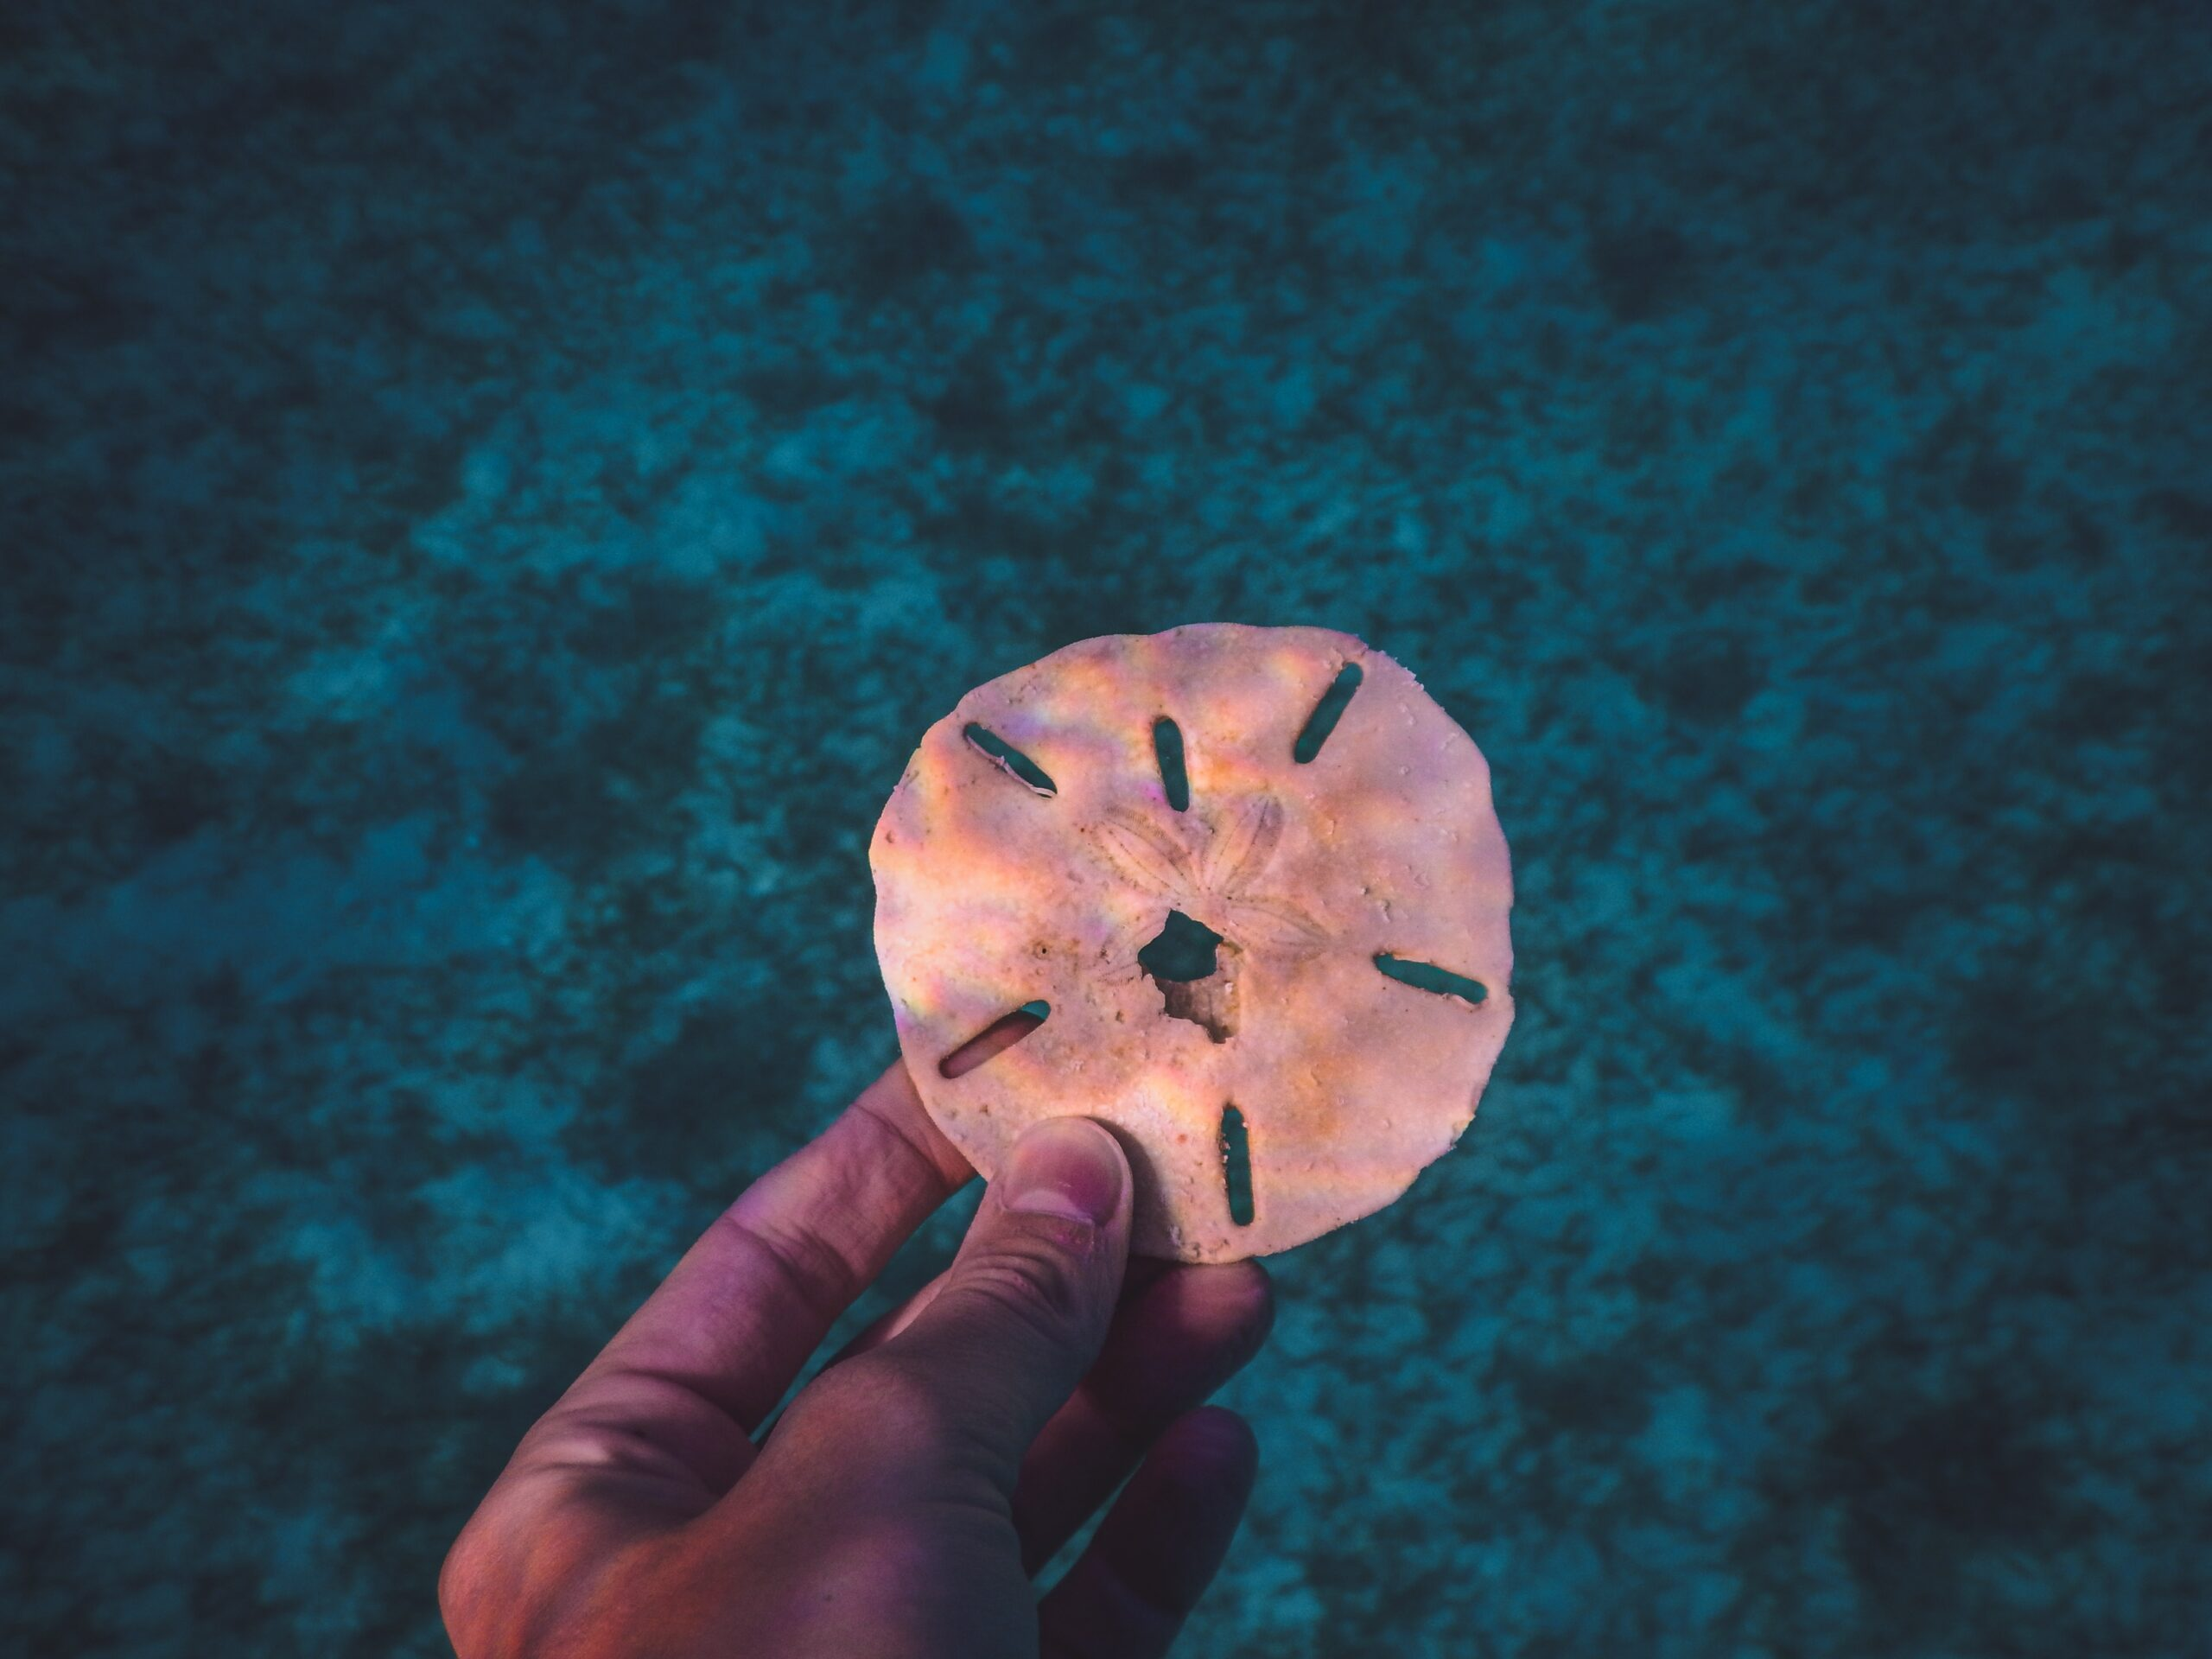 Sand Dollar in the hand close up with black coral background underwater by Analia Ferrario from Unsplash